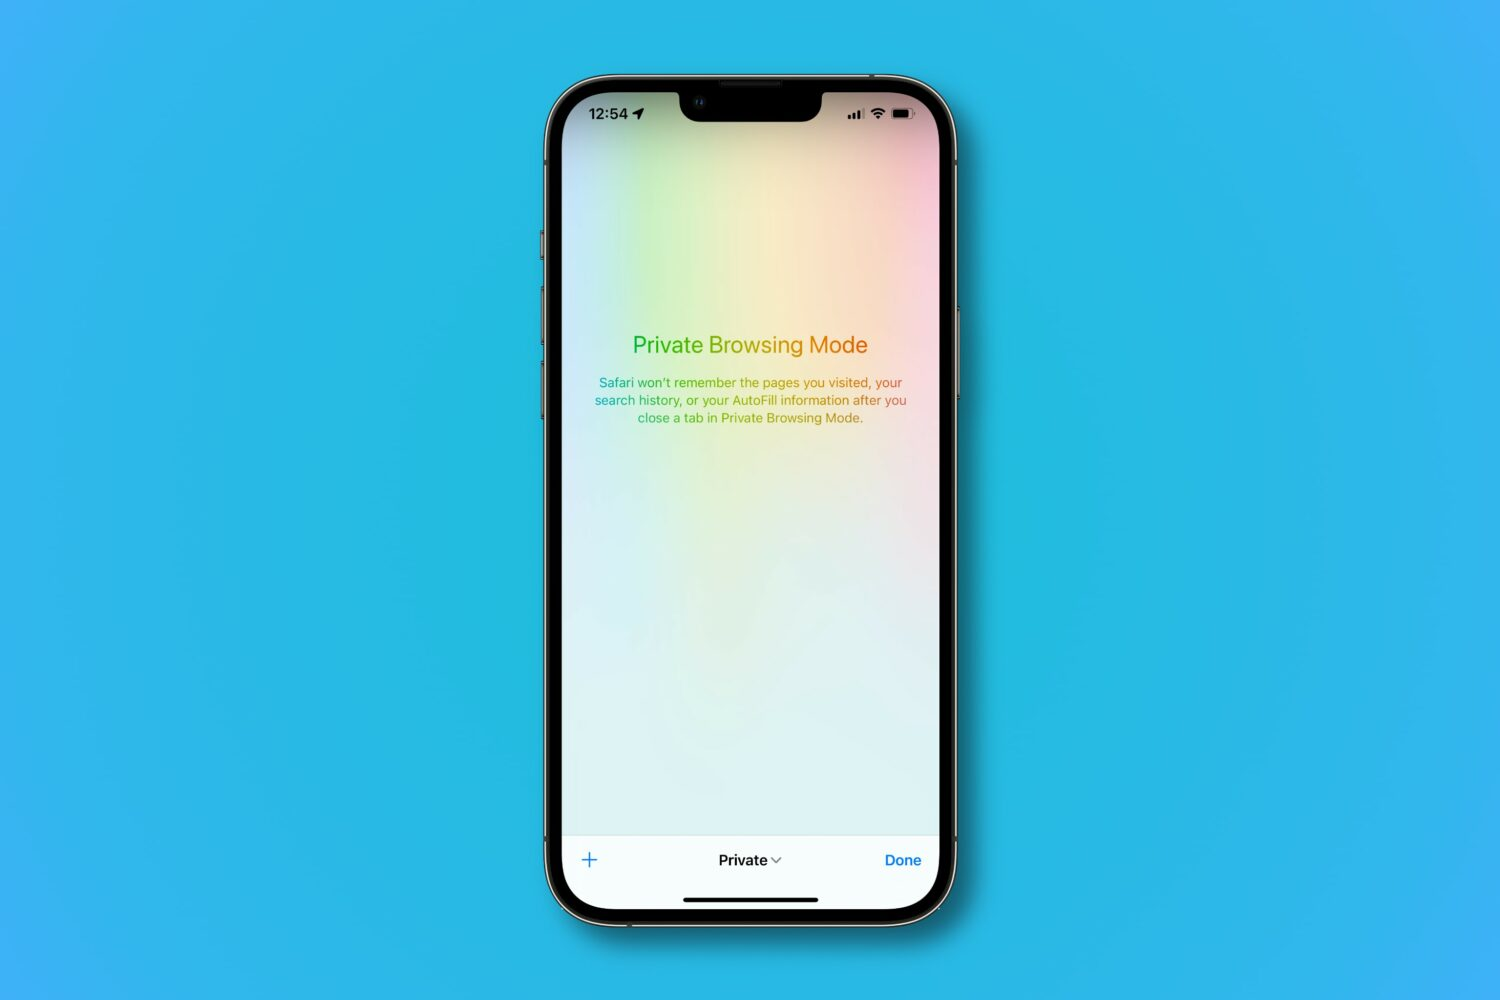 A screenshot showing Apple's Safari browser running in private mode in iOS 15 on iPhone